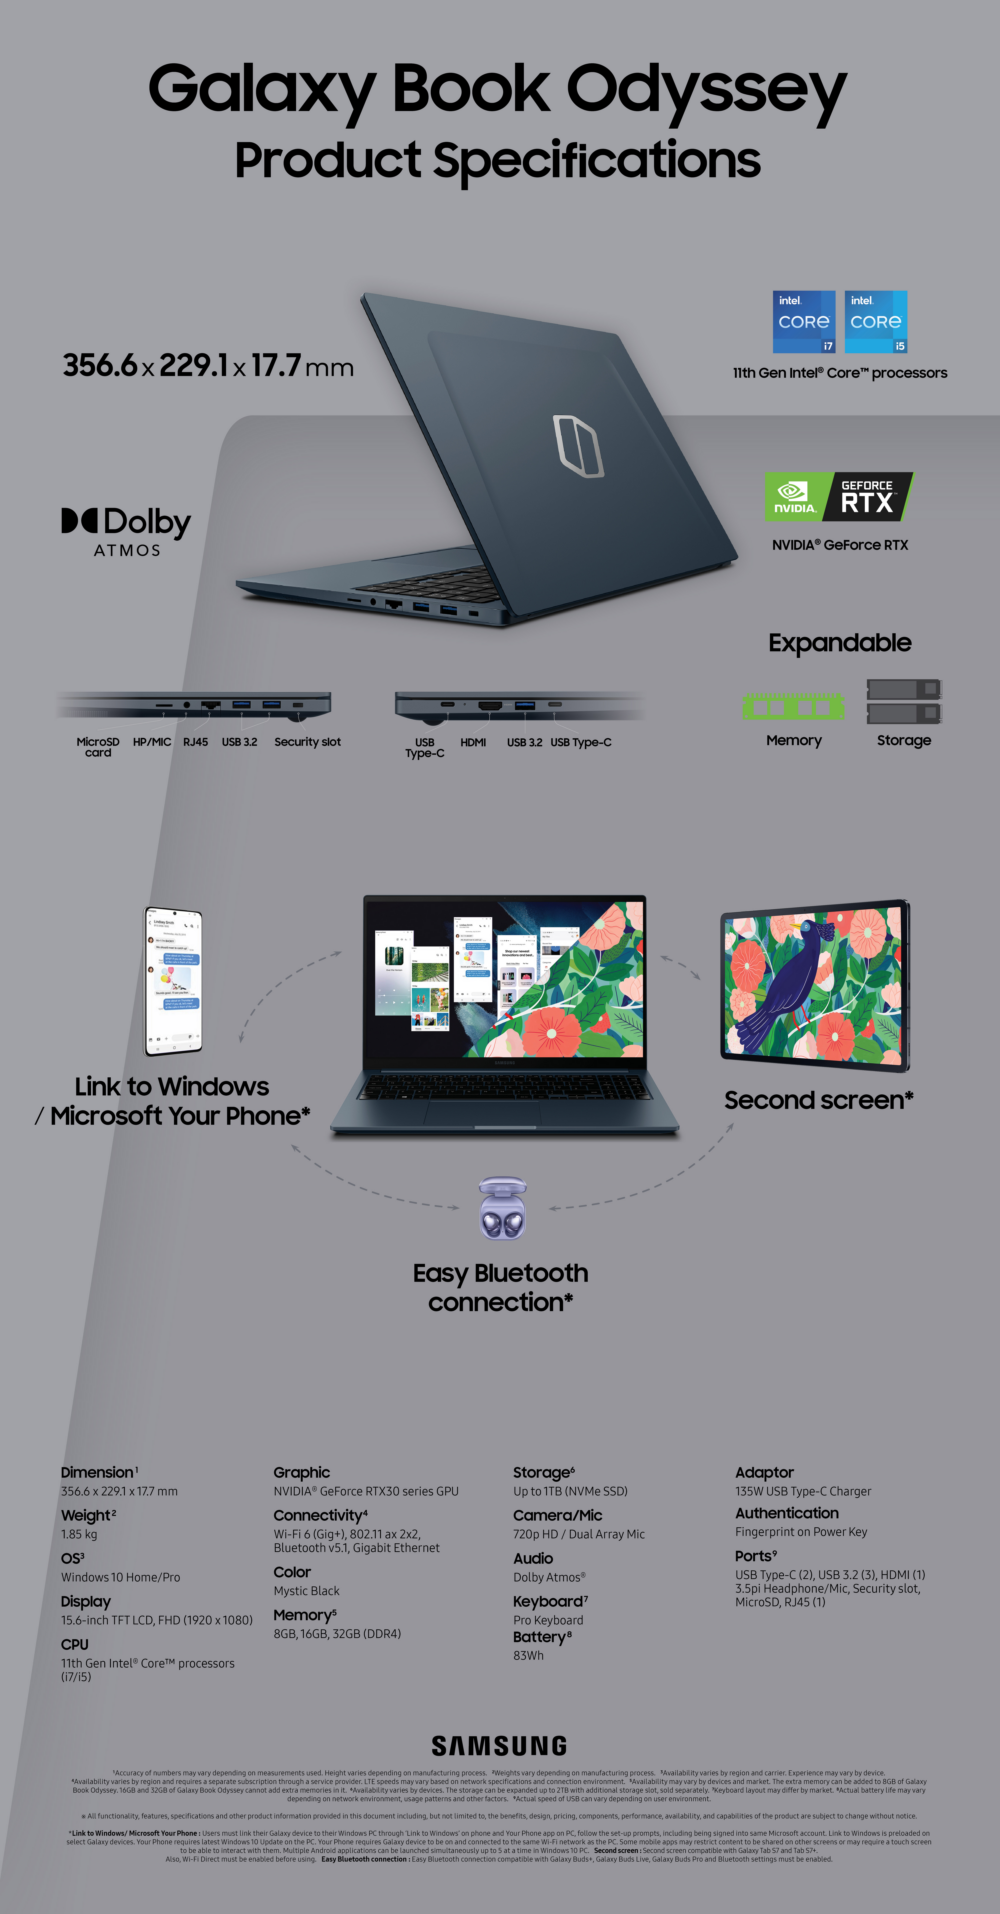 [Infographic] Enjoy All-Day Productivity and Connectivity With the Galaxy Book and Galaxy Book Odyssey - Image 1